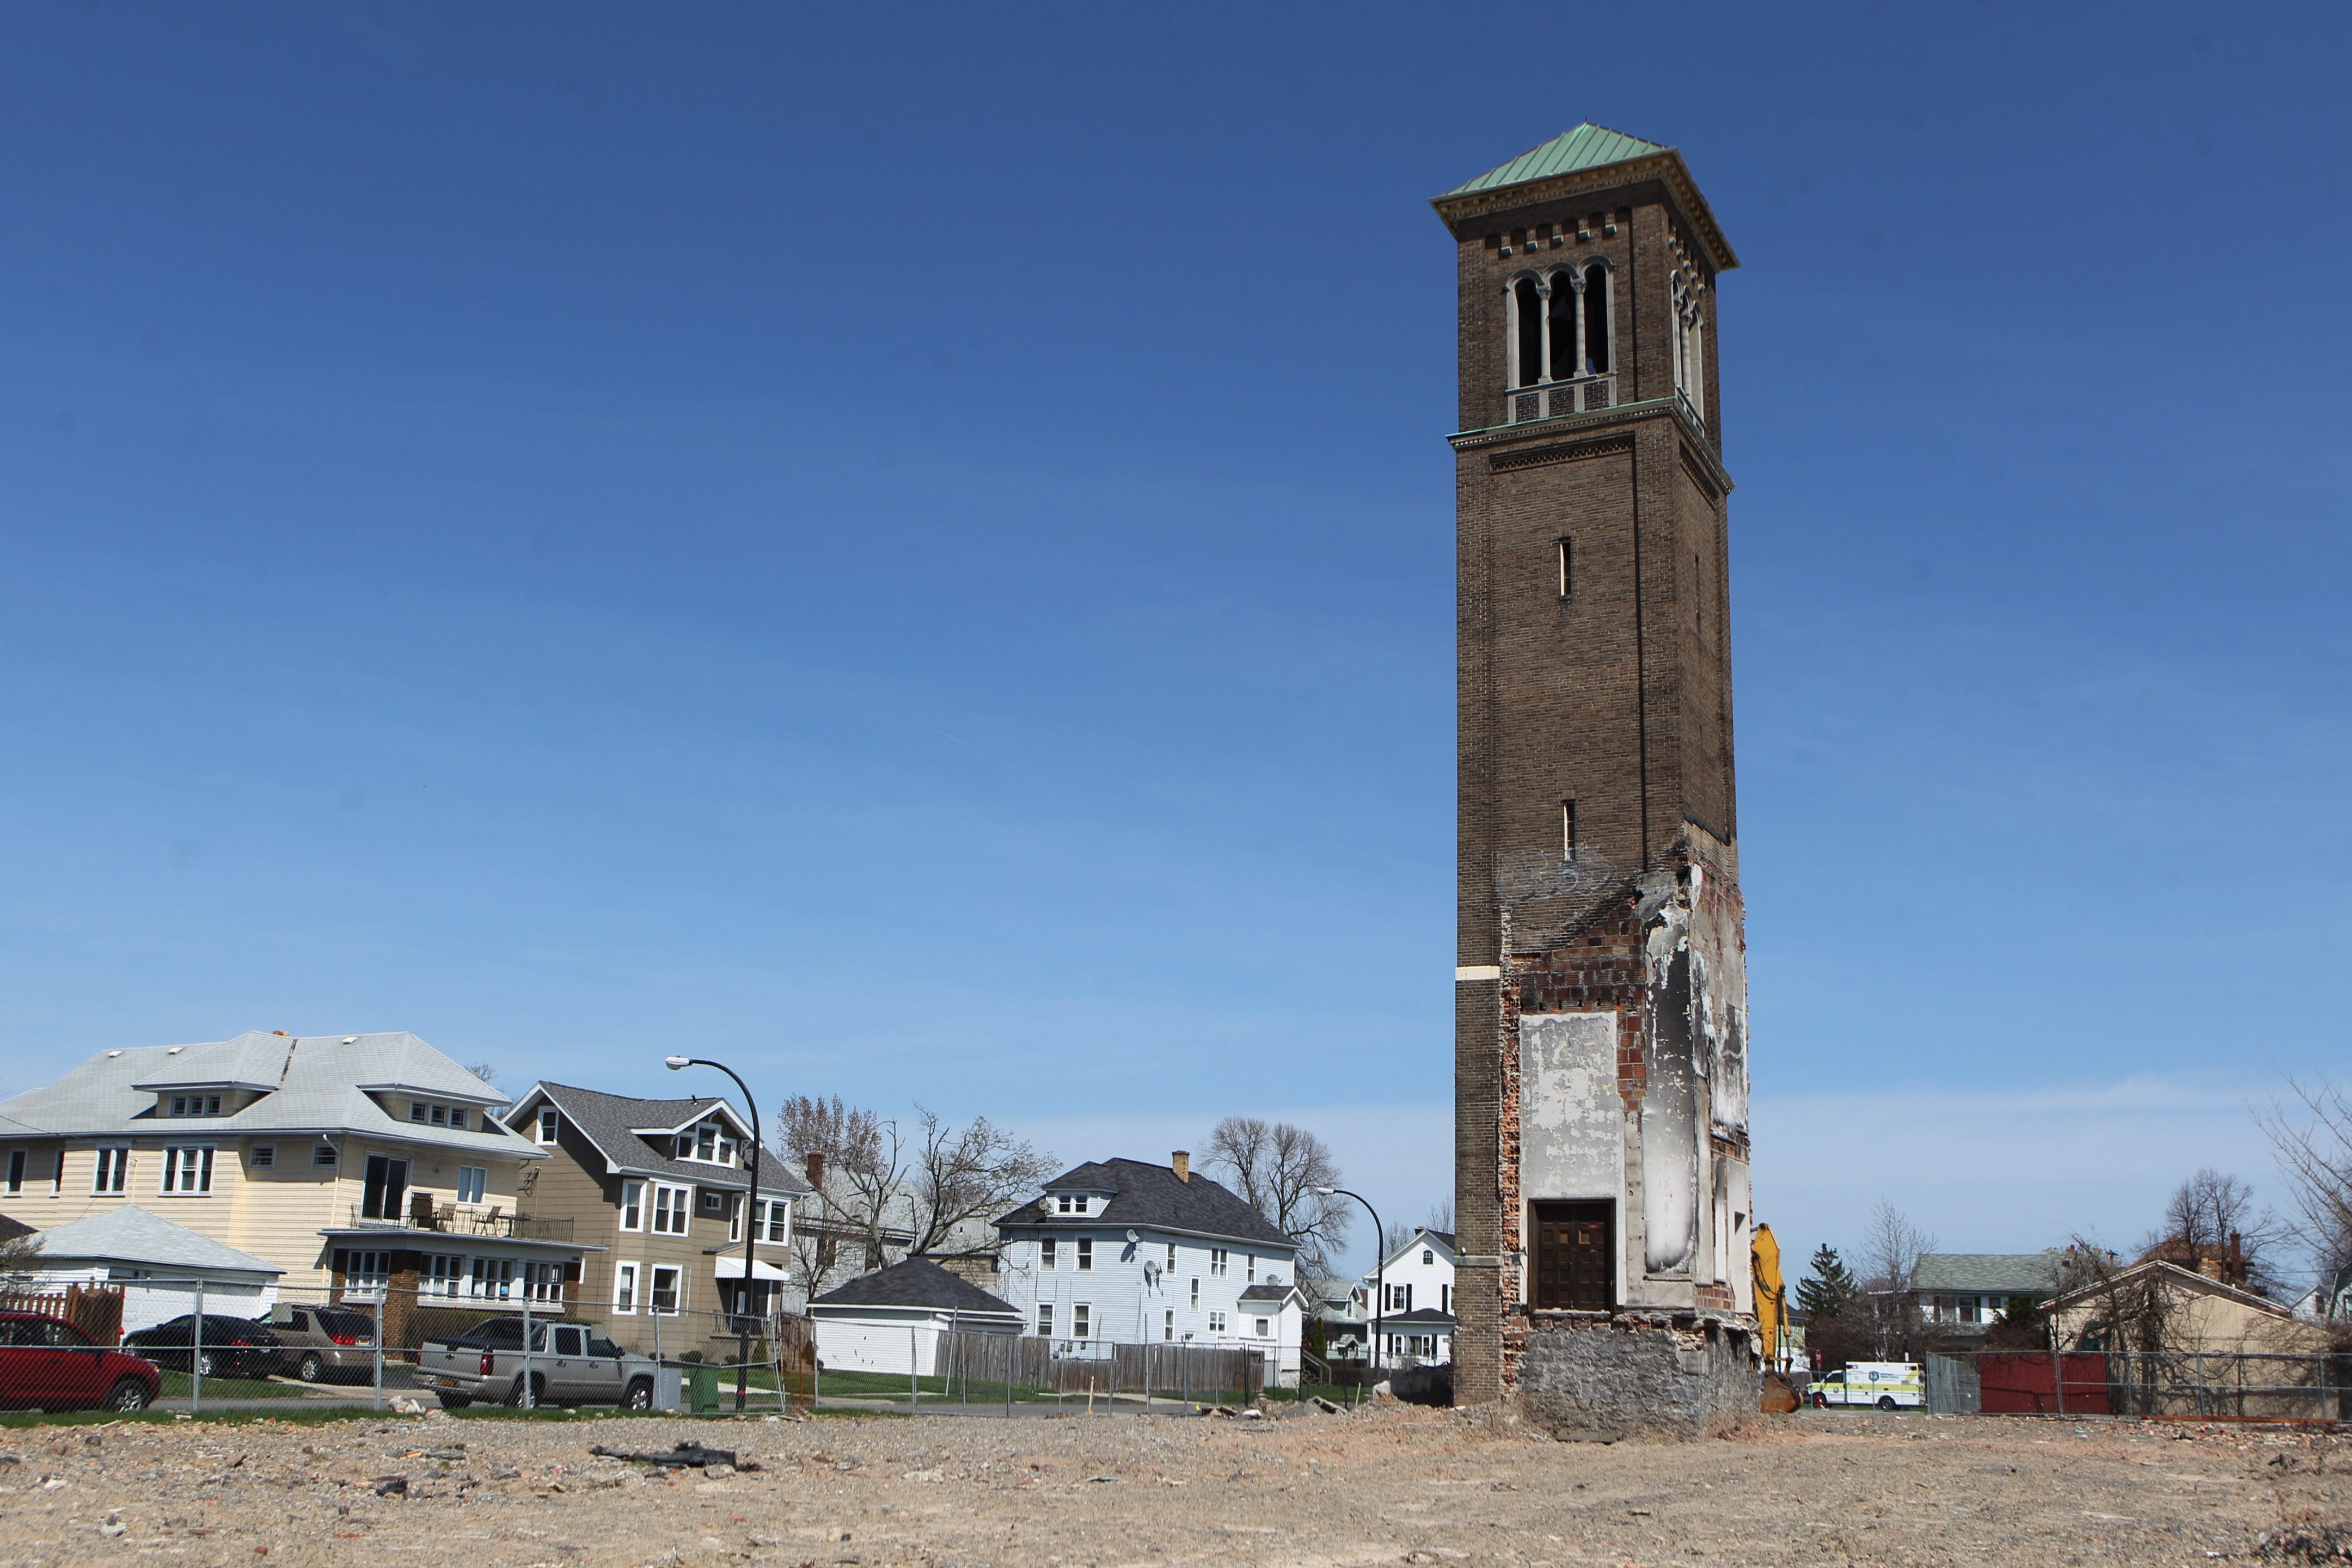 Tower is all that remains of the former church at Colvin and Tacoma avenues in North Buffalo, loca- tion of the $3 million Bell Tower Lofts project that will include 29 one- and two-bedroom market-rate apartments.